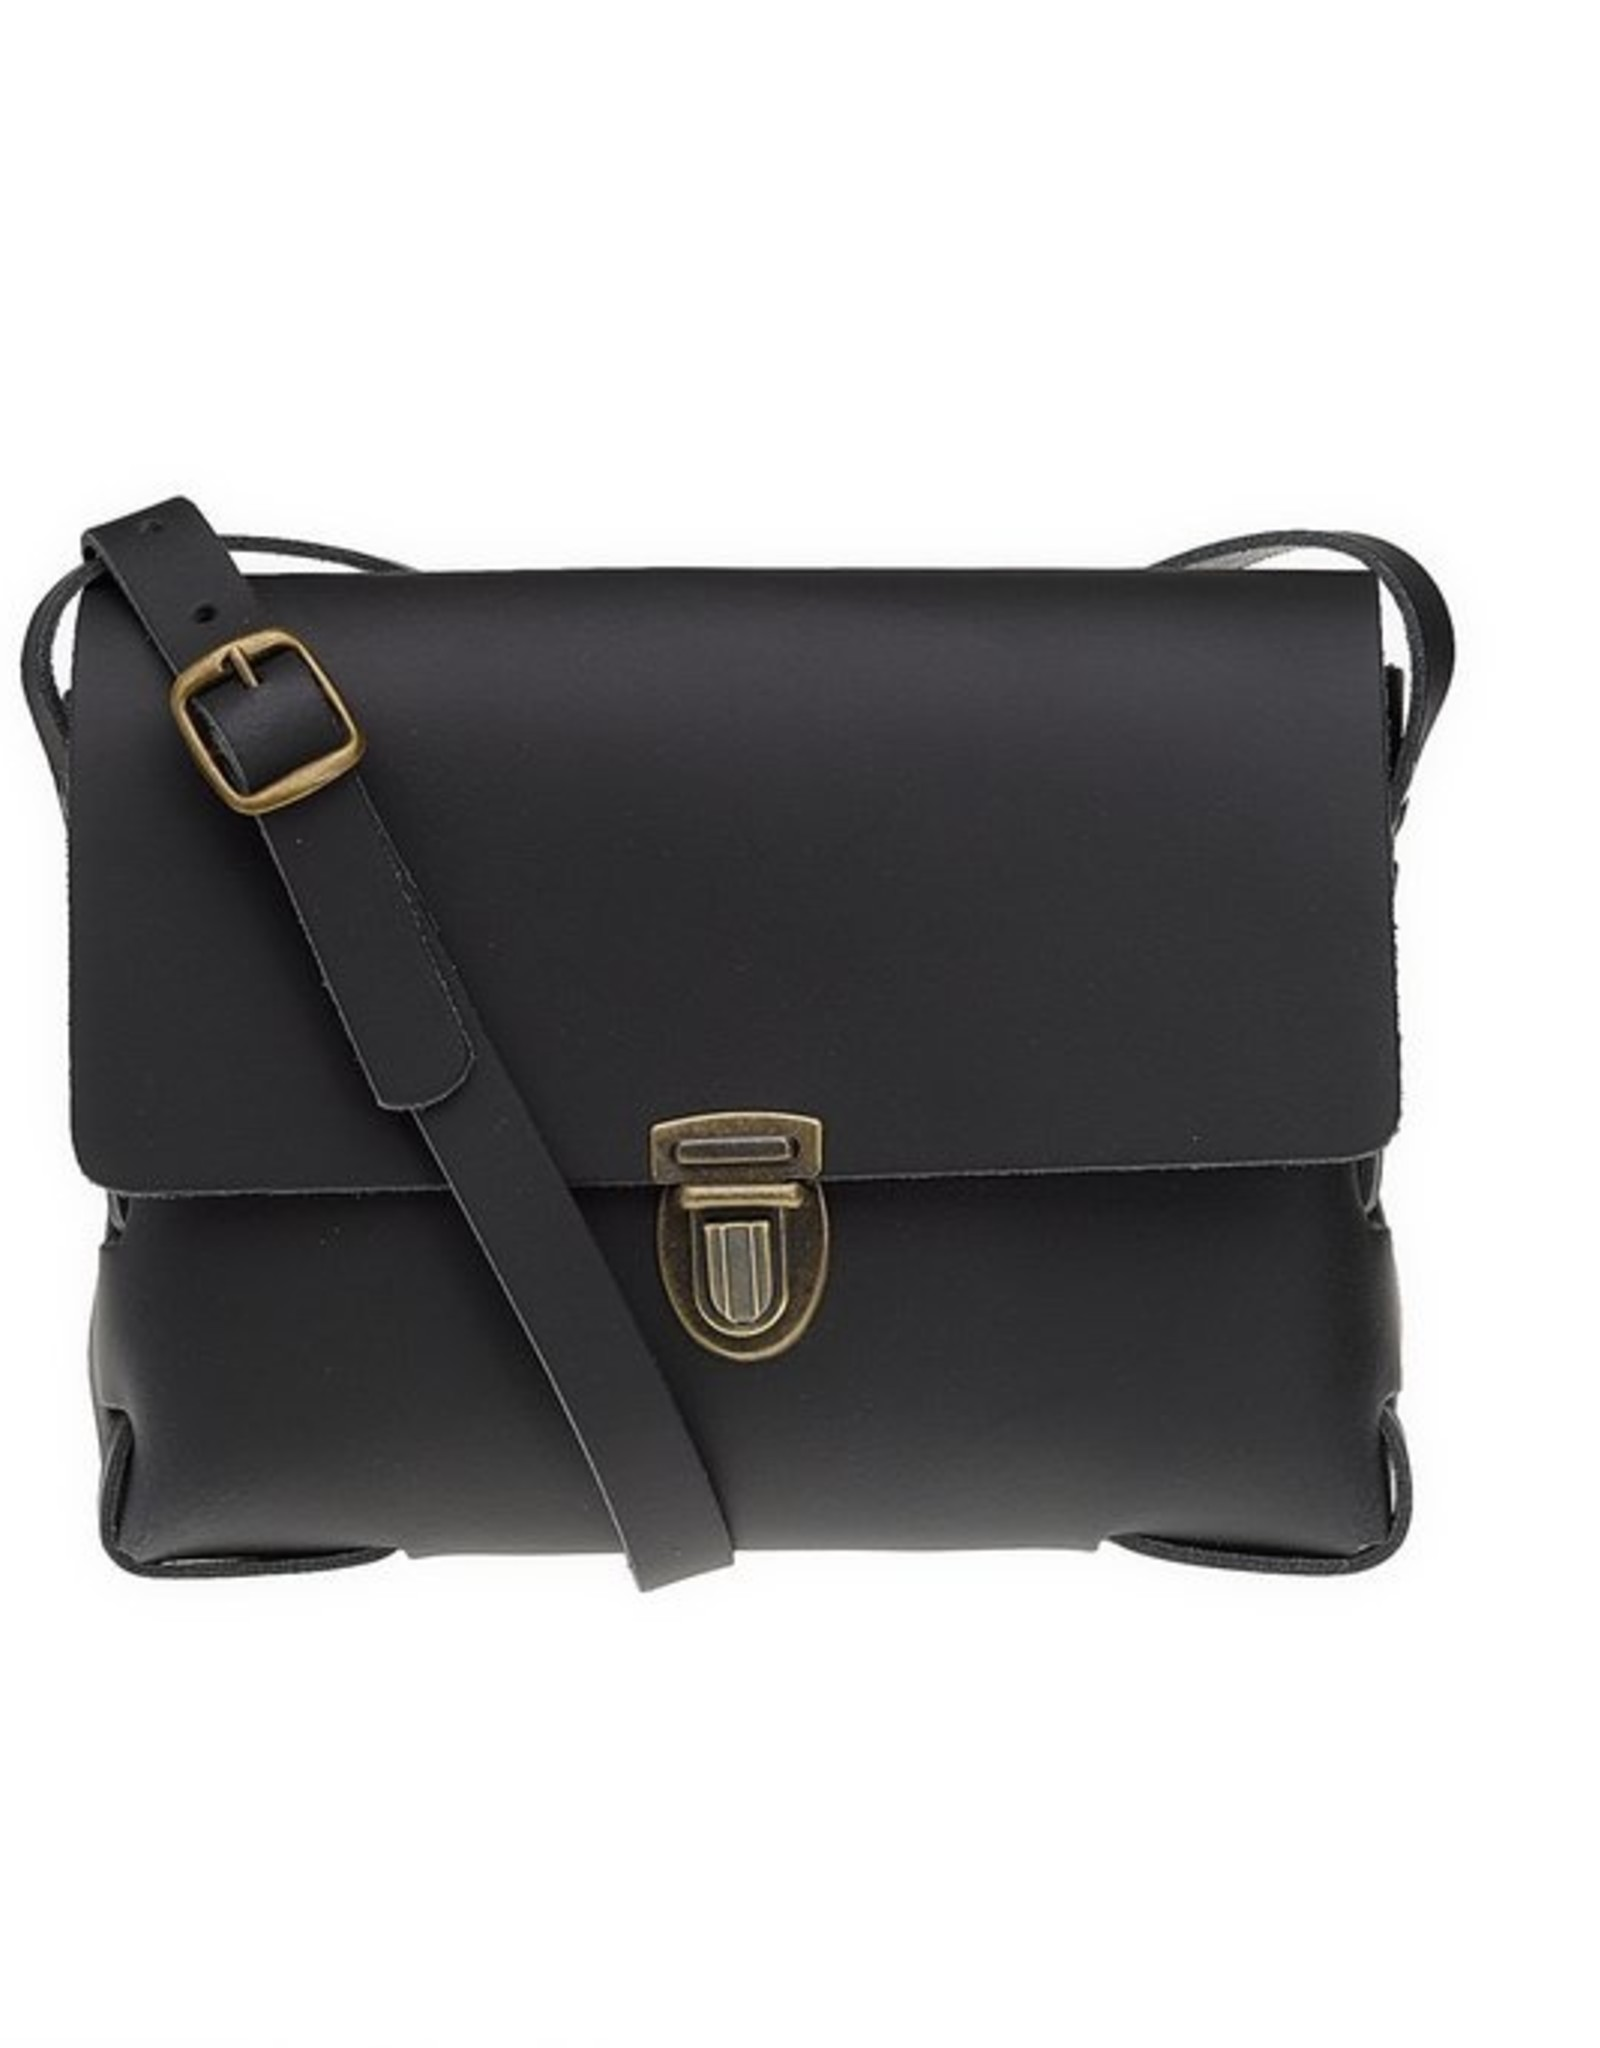 Elvy Elvy Bag Gloria Plain Black